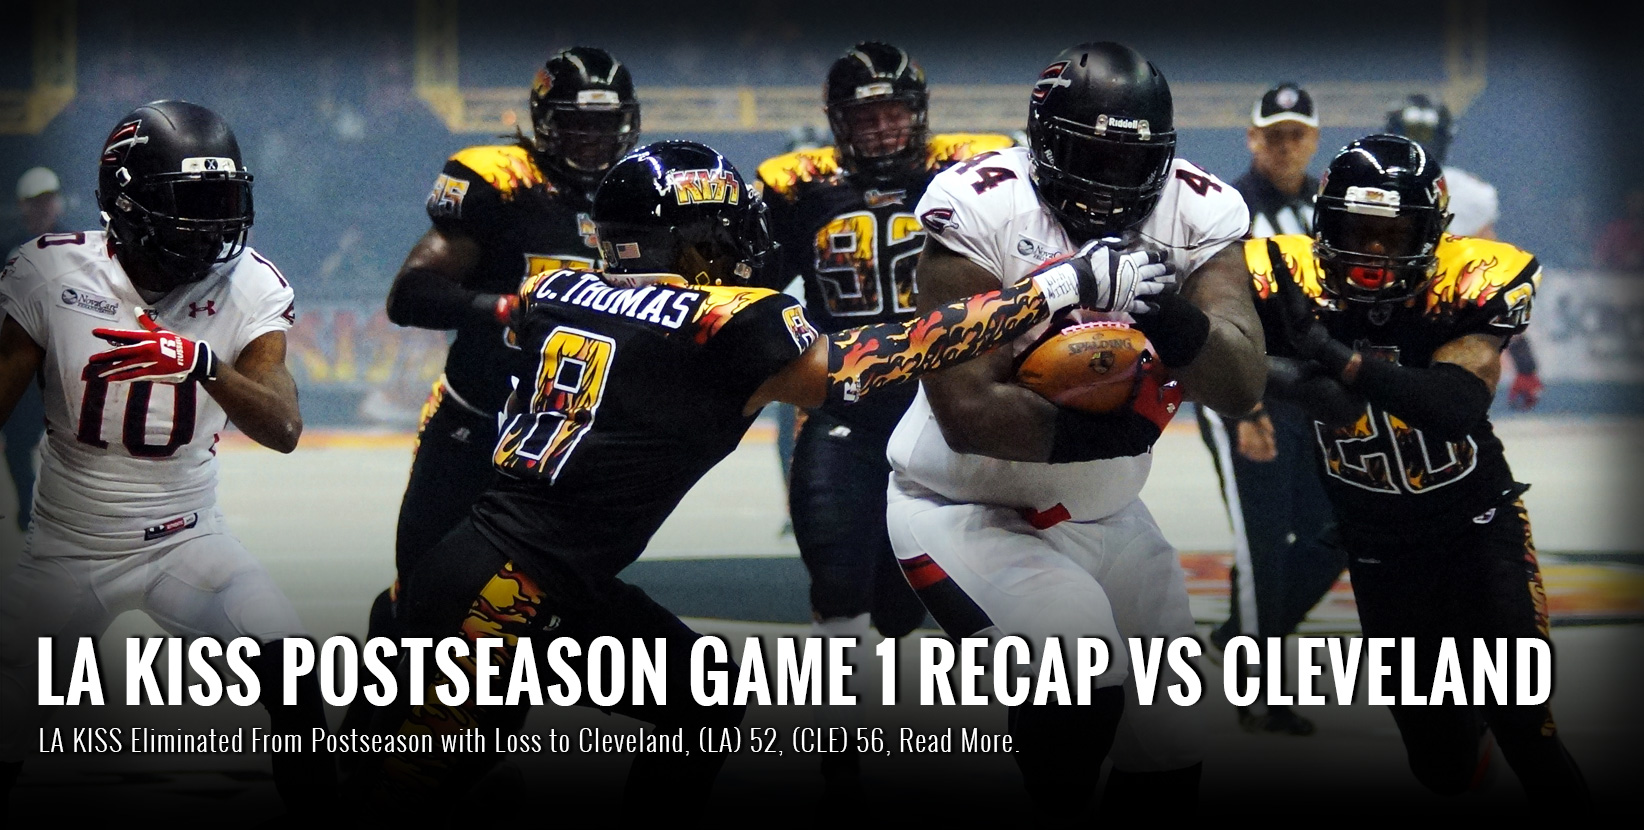 LA KISS Eliminated From Postseason with Loss to Cleveland